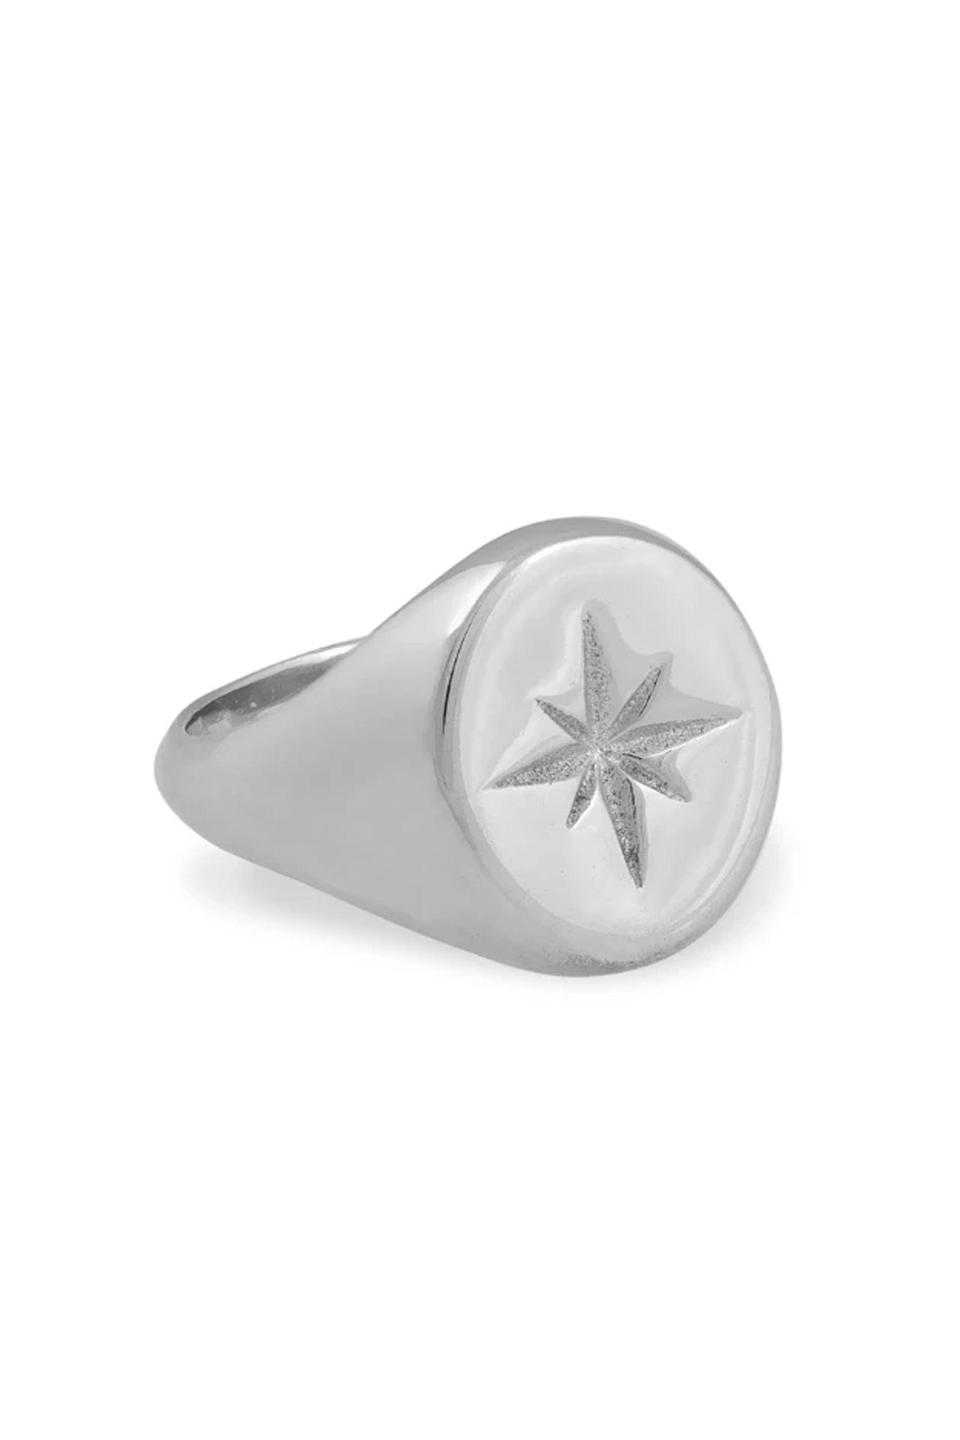 """<p><strong>Bonito</strong></p><p>bonitojewelry.com</p><p><strong>$70.00</strong></p><p><a href=""""https://go.redirectingat.com?id=74968X1596630&url=https%3A%2F%2Fbonitojewelry.com%2Fproducts%2Fzeus-star-ring-silver&sref=https%3A%2F%2Fwww.cosmopolitan.com%2Fstyle-beauty%2Ffashion%2Fg13602855%2Fbest-gift-ideas-for-women%2F"""" rel=""""nofollow noopener"""" target=""""_blank"""" data-ylk=""""slk:Shop Now"""" class=""""link rapid-noclick-resp"""">Shop Now</a></p><p>This timeless oval-shaped ring is super chic but also supports a great cause. For every $100 spent at Bonito, the company donates a backpack filled with supplies to a child in need.</p>"""